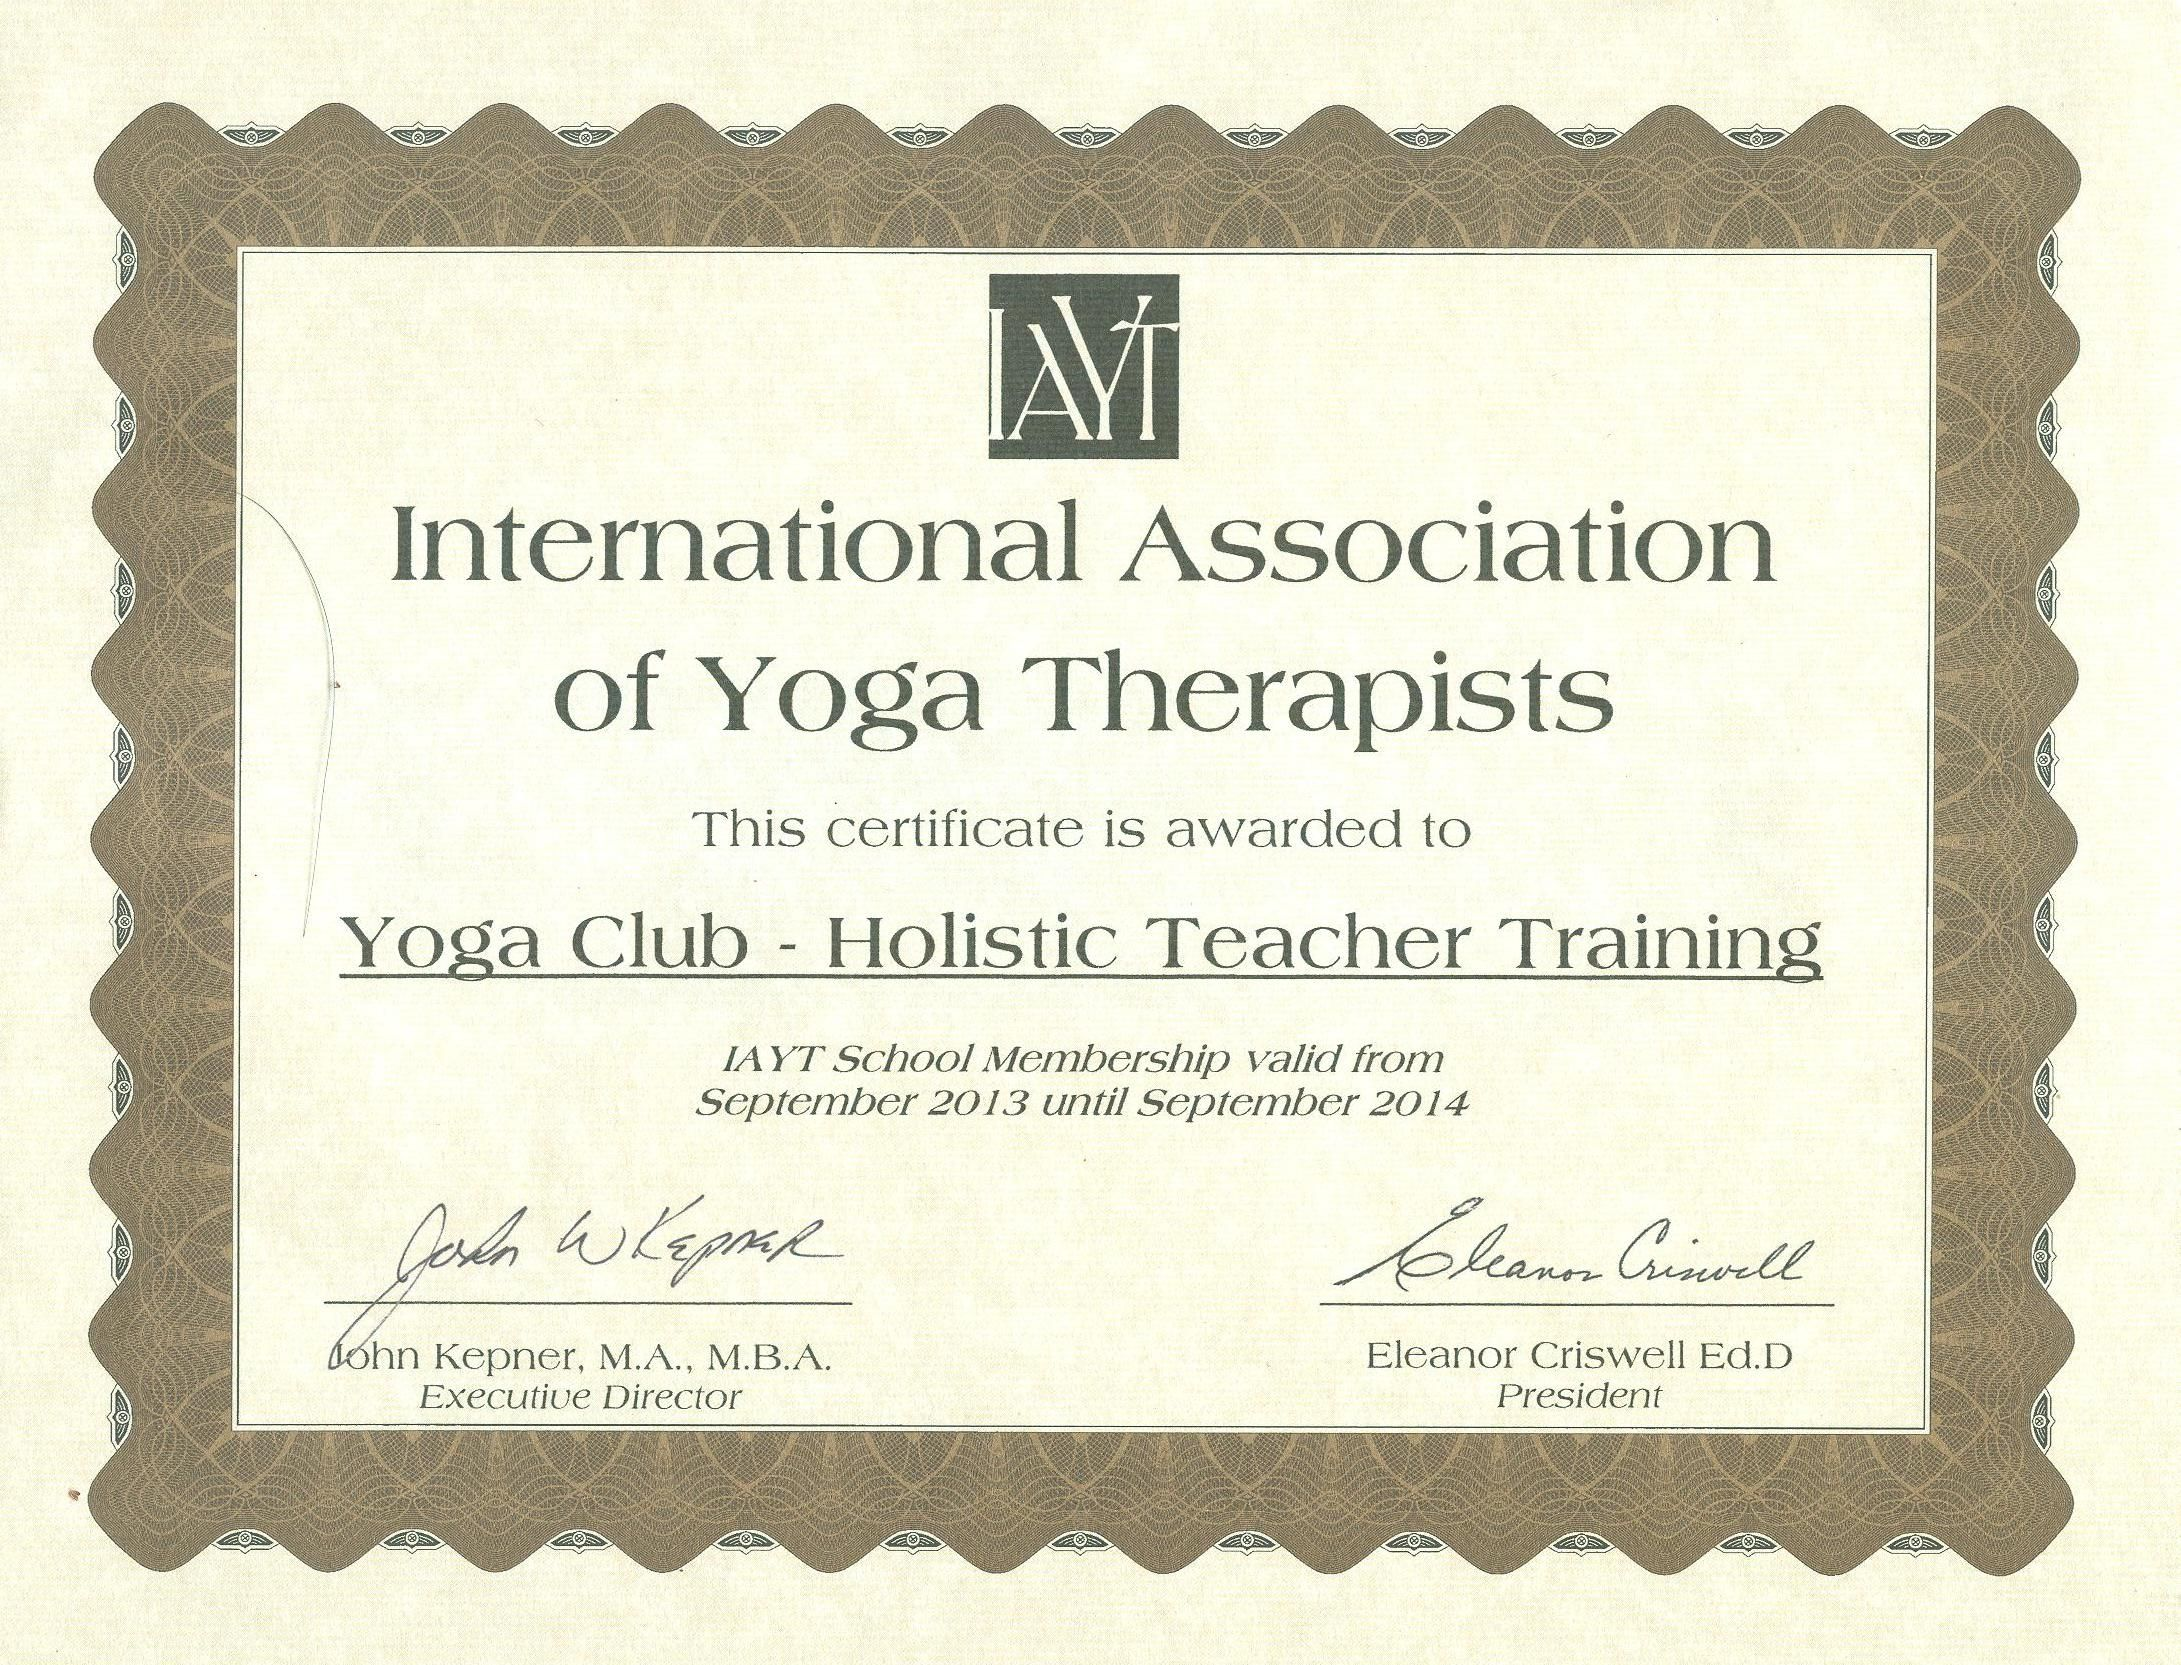 yoga alliance teacher training certificate template learn about yoga today and improve your life style - Yoga Certificate Template